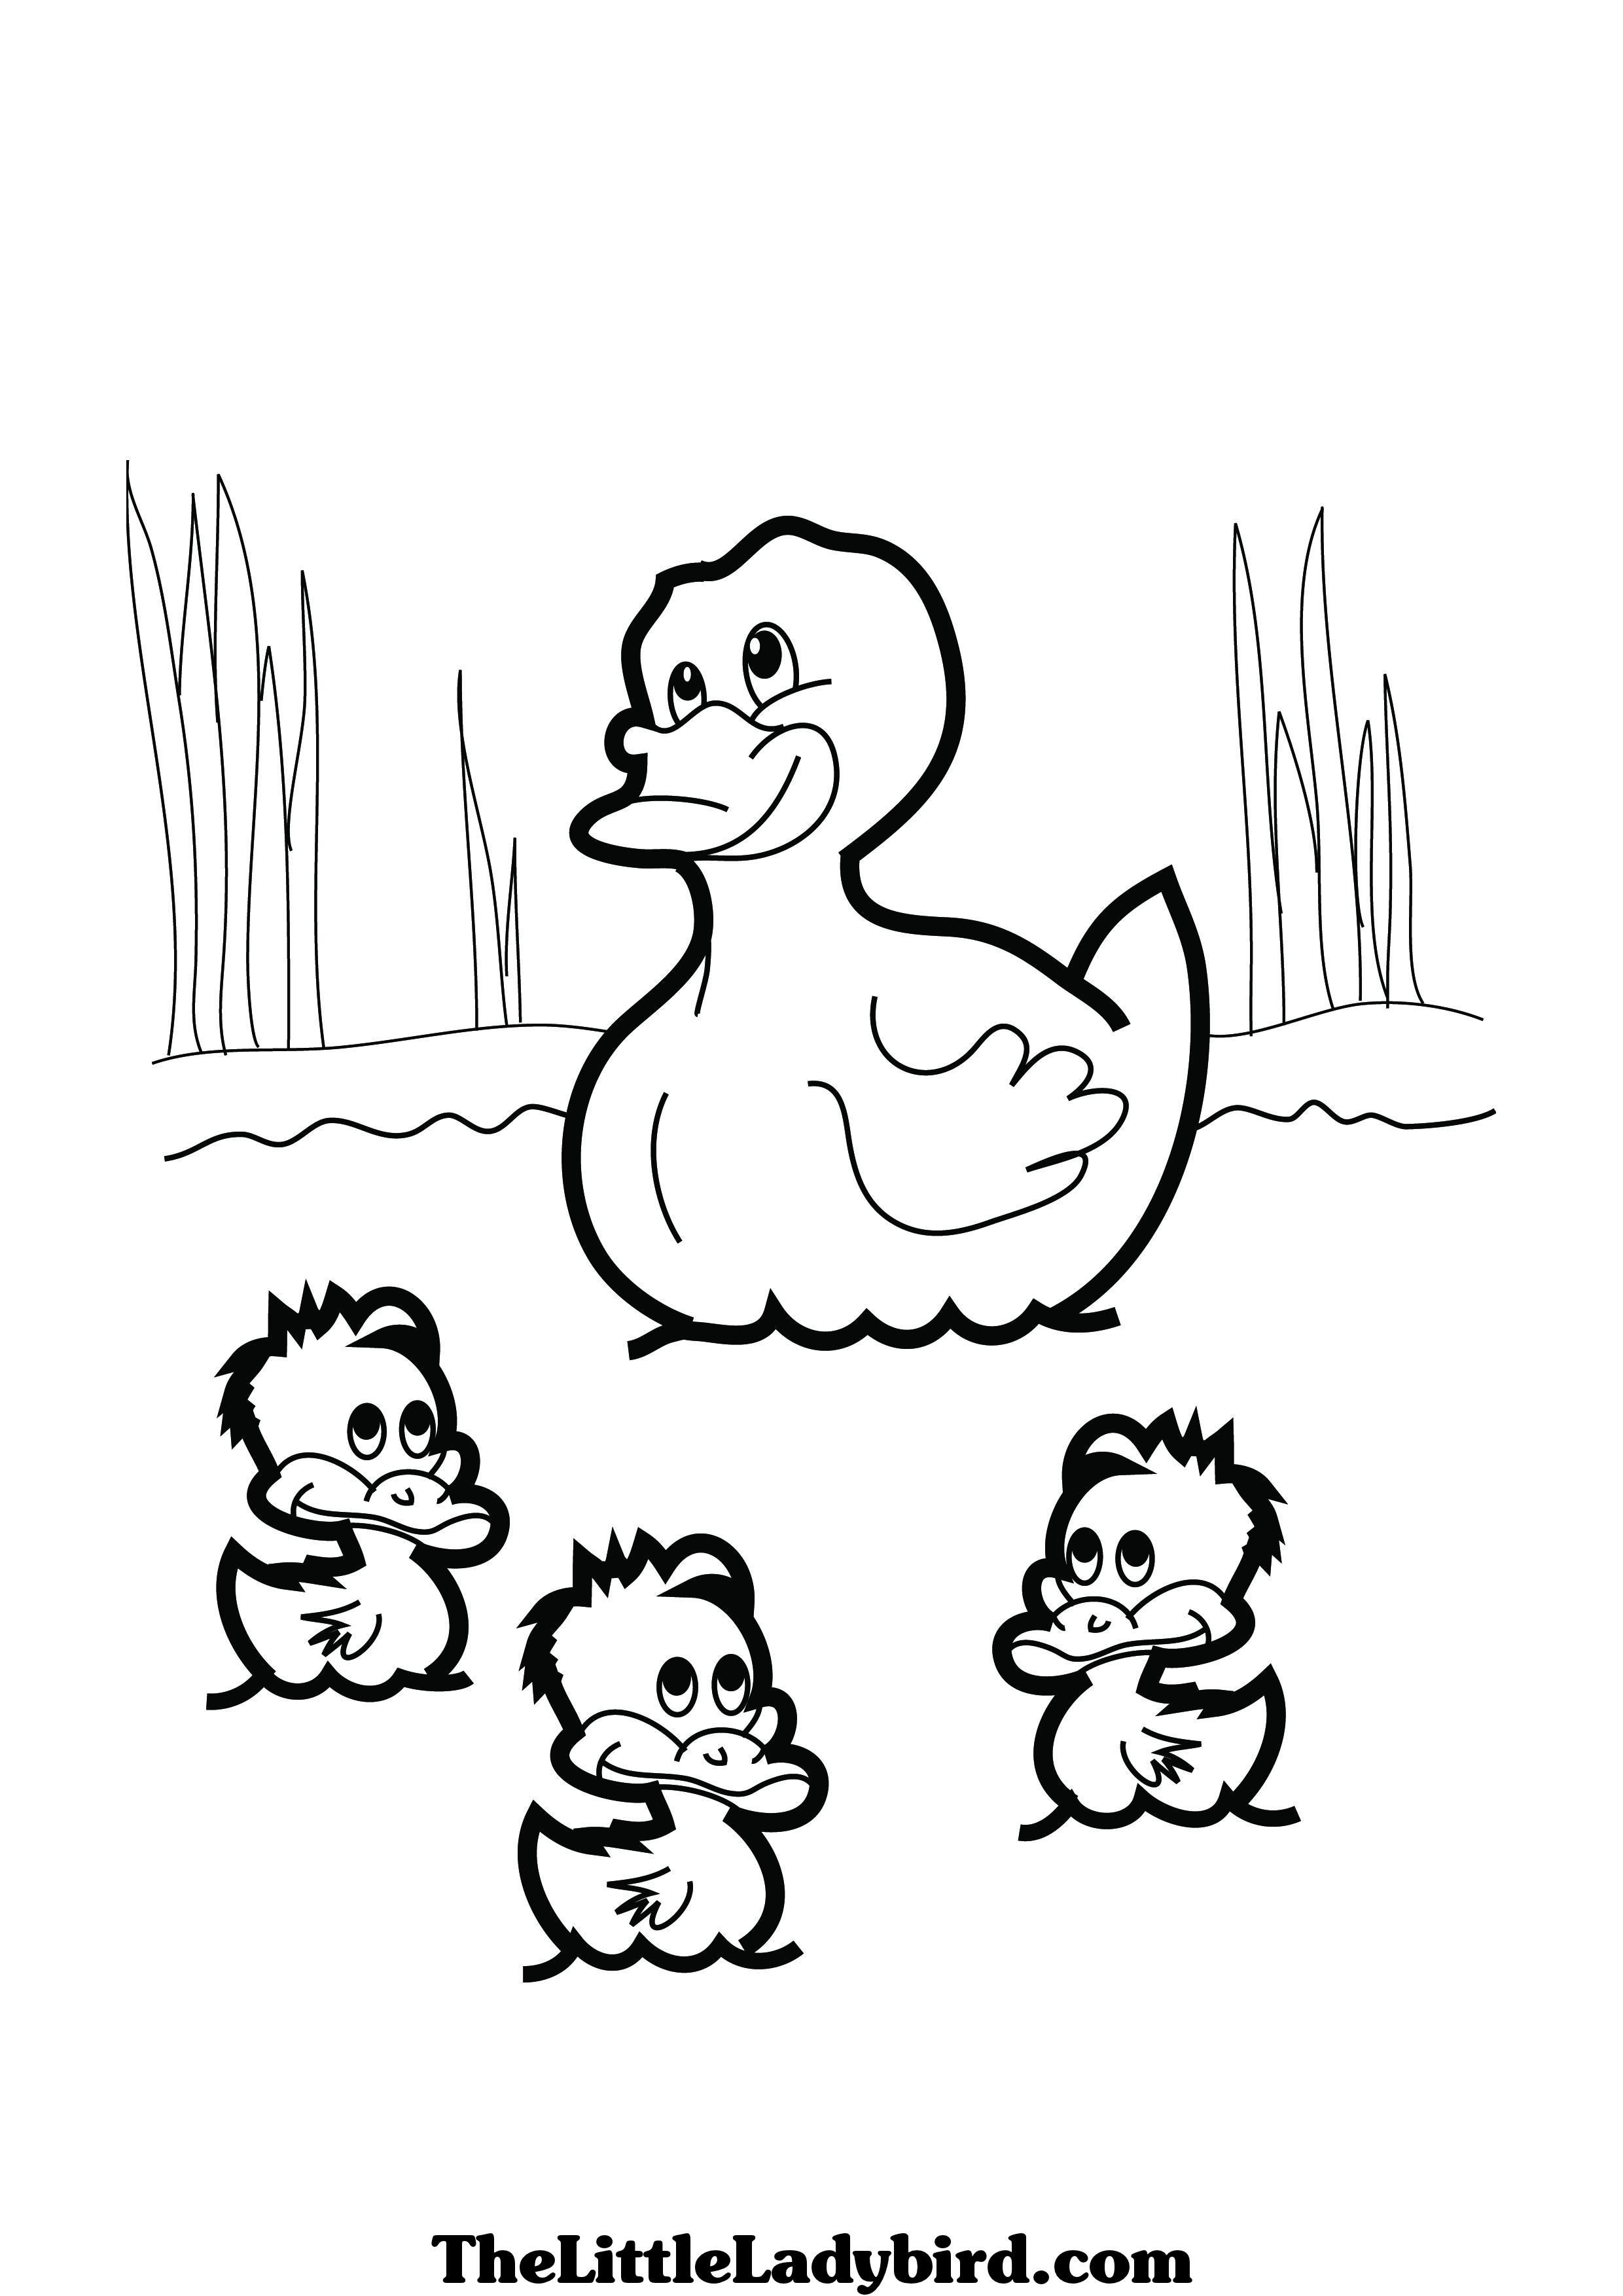 duckling and coloring pages - photo#45